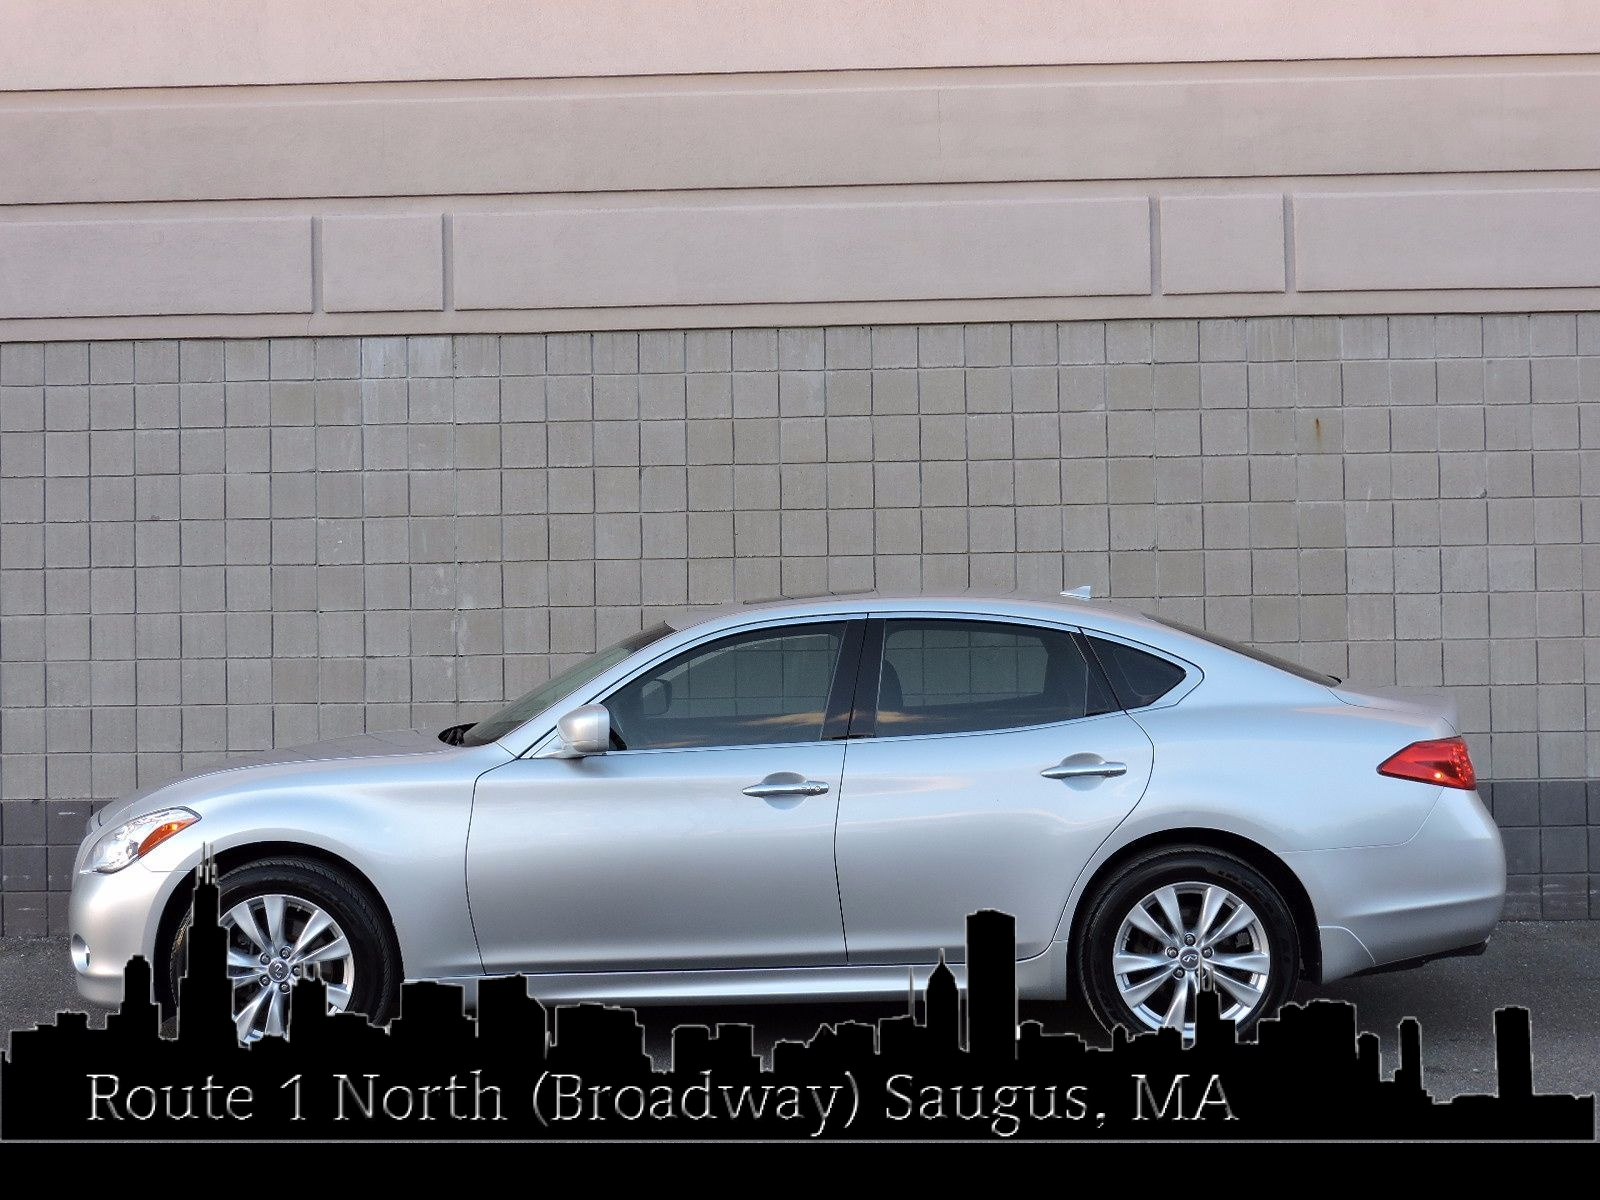 Used 2011 infiniti m37 type s at saugus auto mall 2011 infiniti m37 x all wheel drive navigation vanachro Image collections